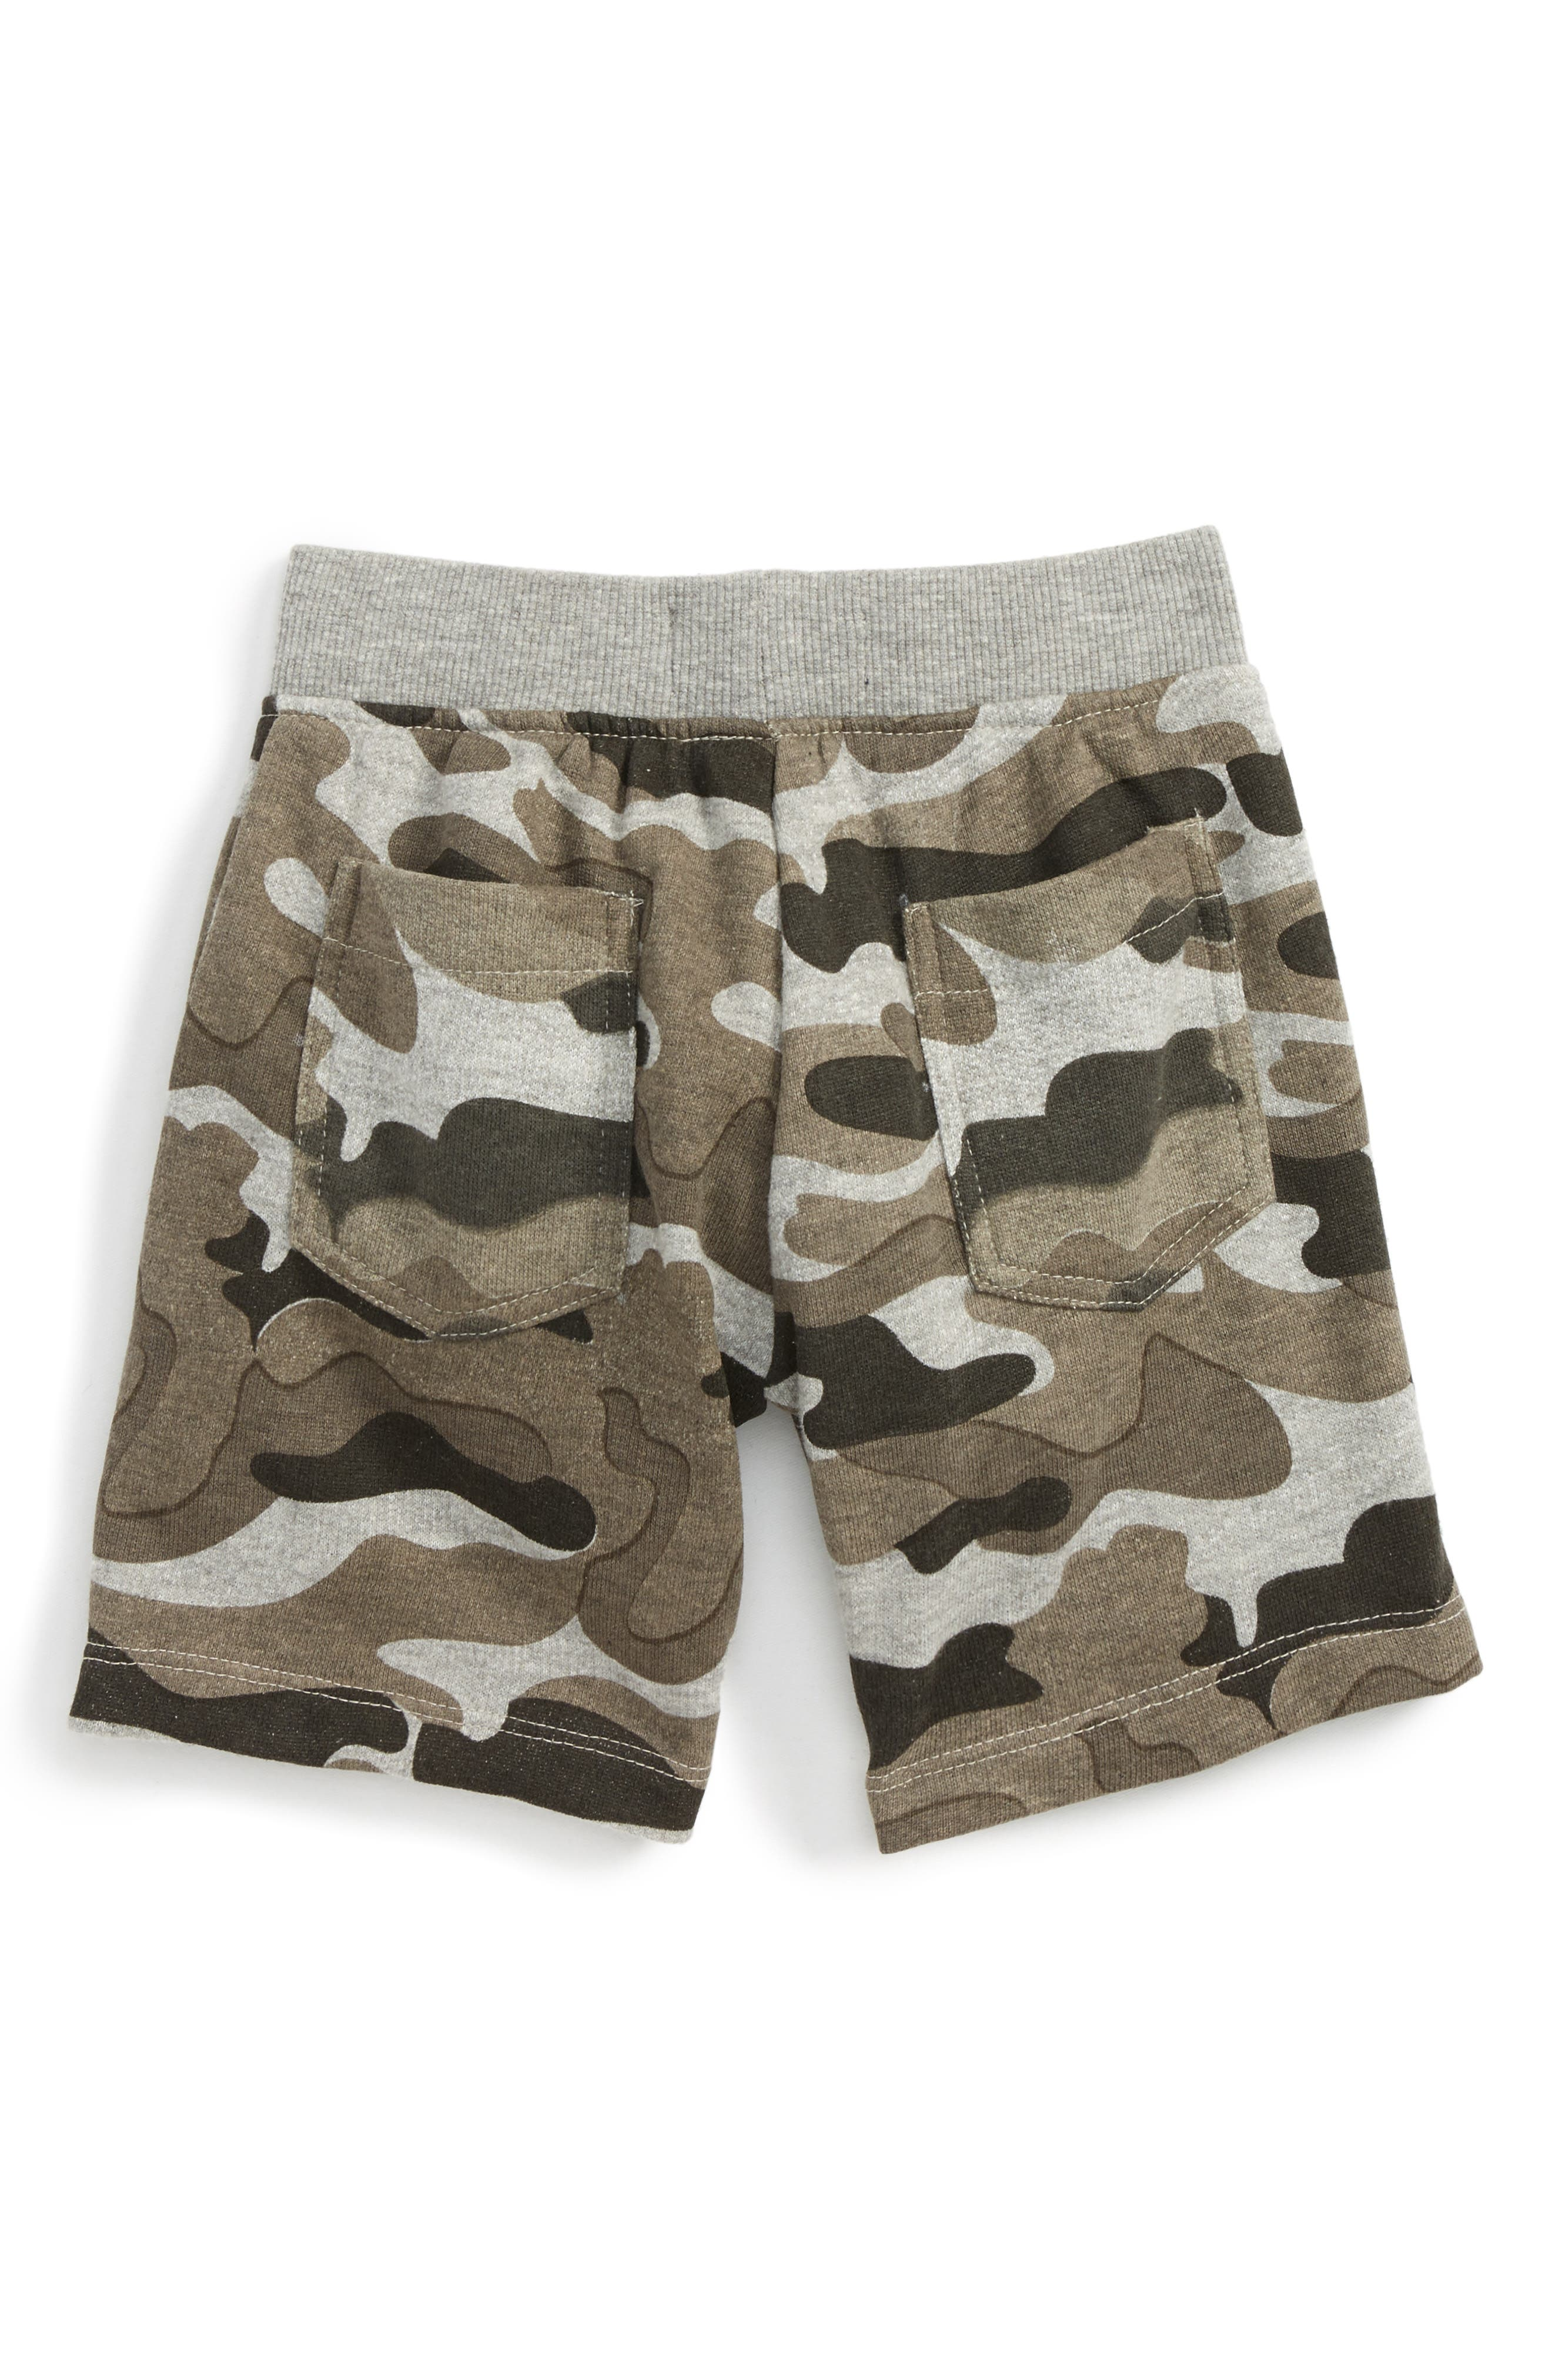 Stephen Camo Shorts,                             Alternate thumbnail 2, color,                             Grey Camo